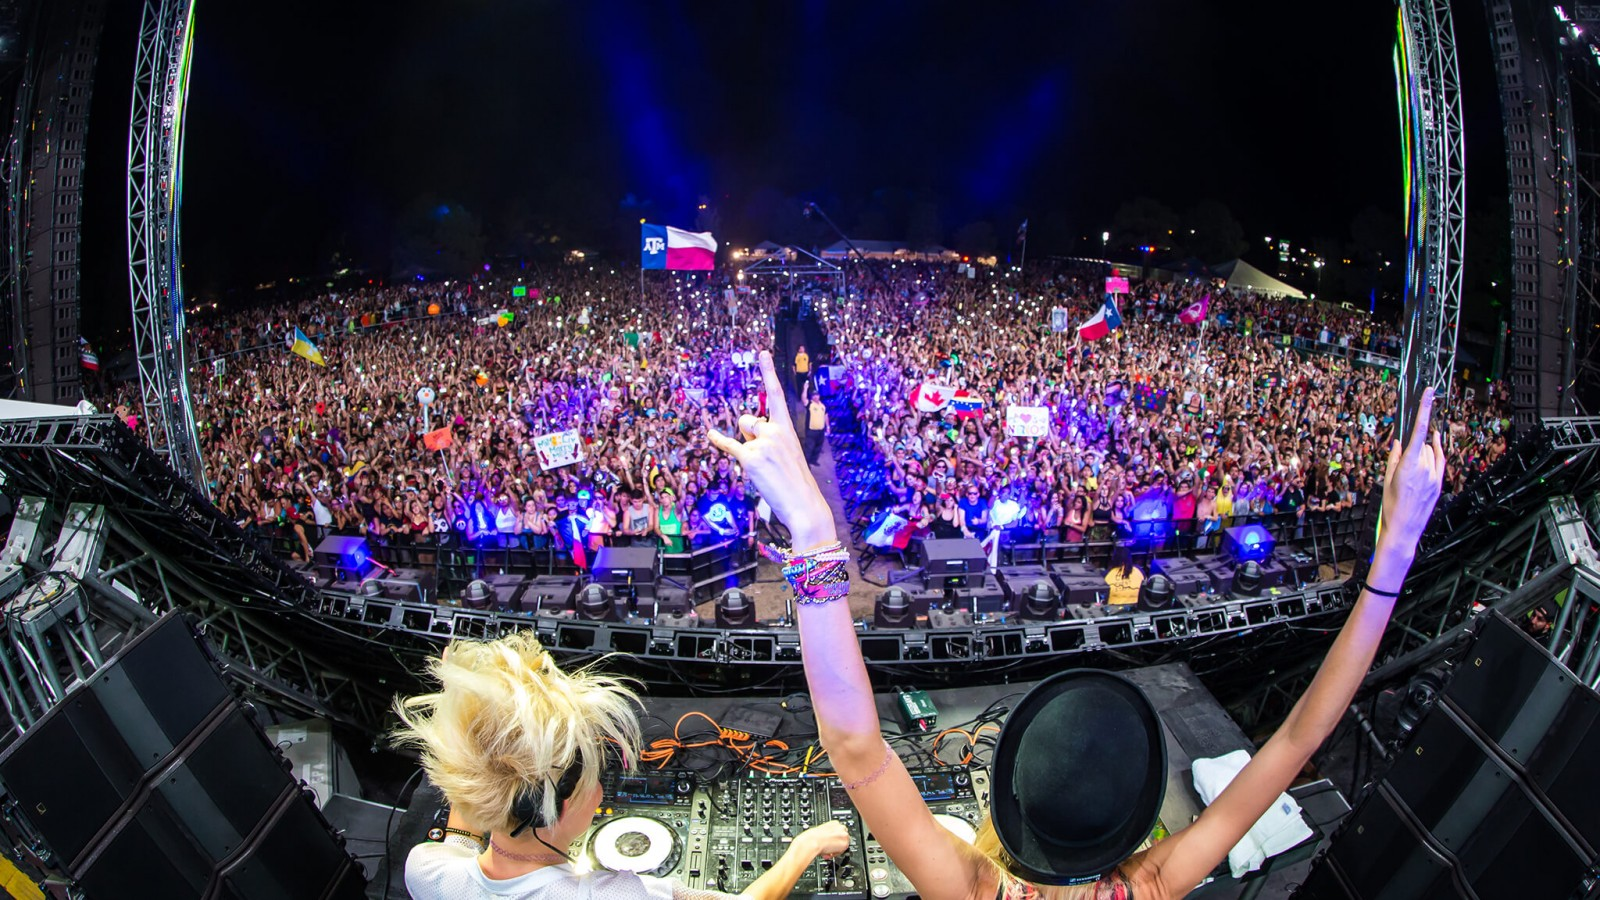 NERVO performing at Something Wicked 2014